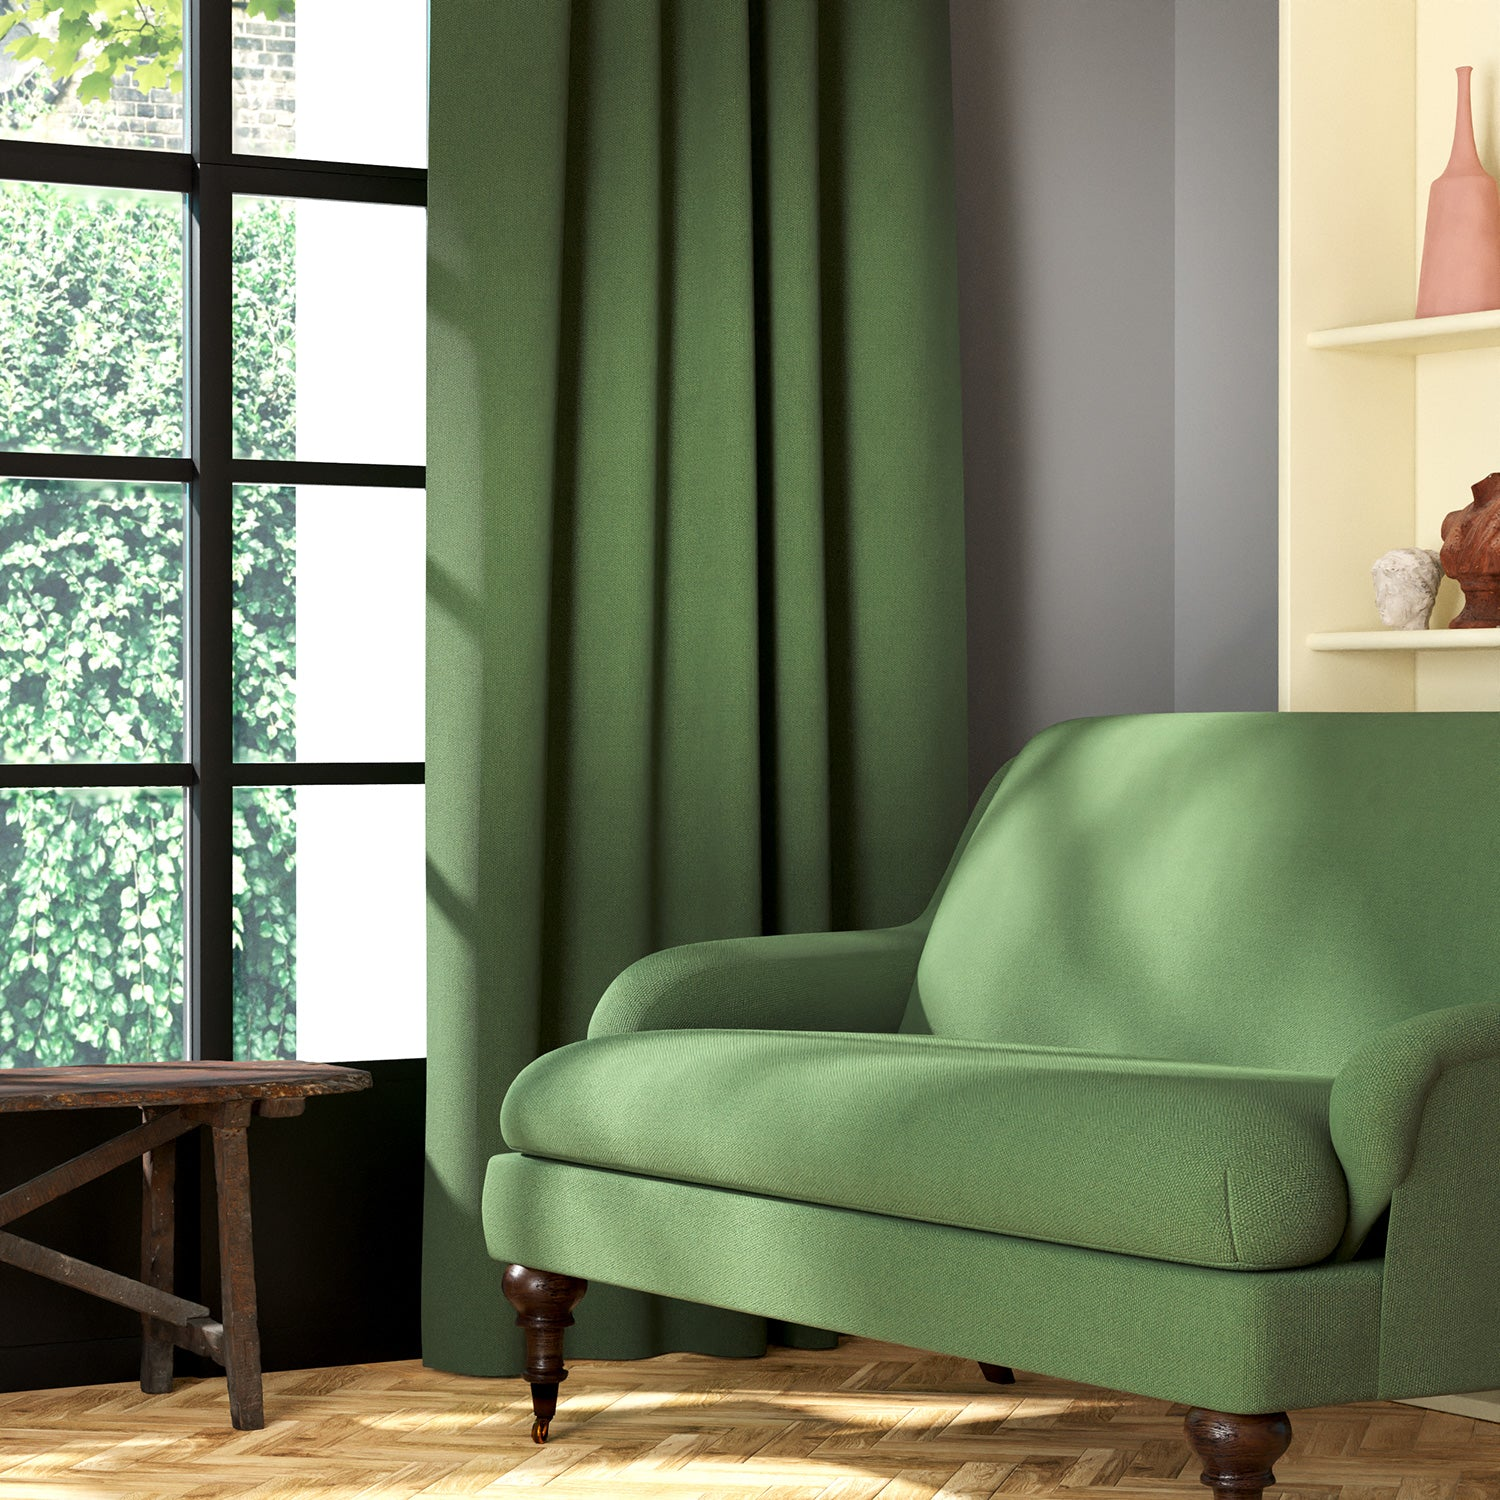 Living room featuring a sofa and curtains in a plain green eco-friendly fabric